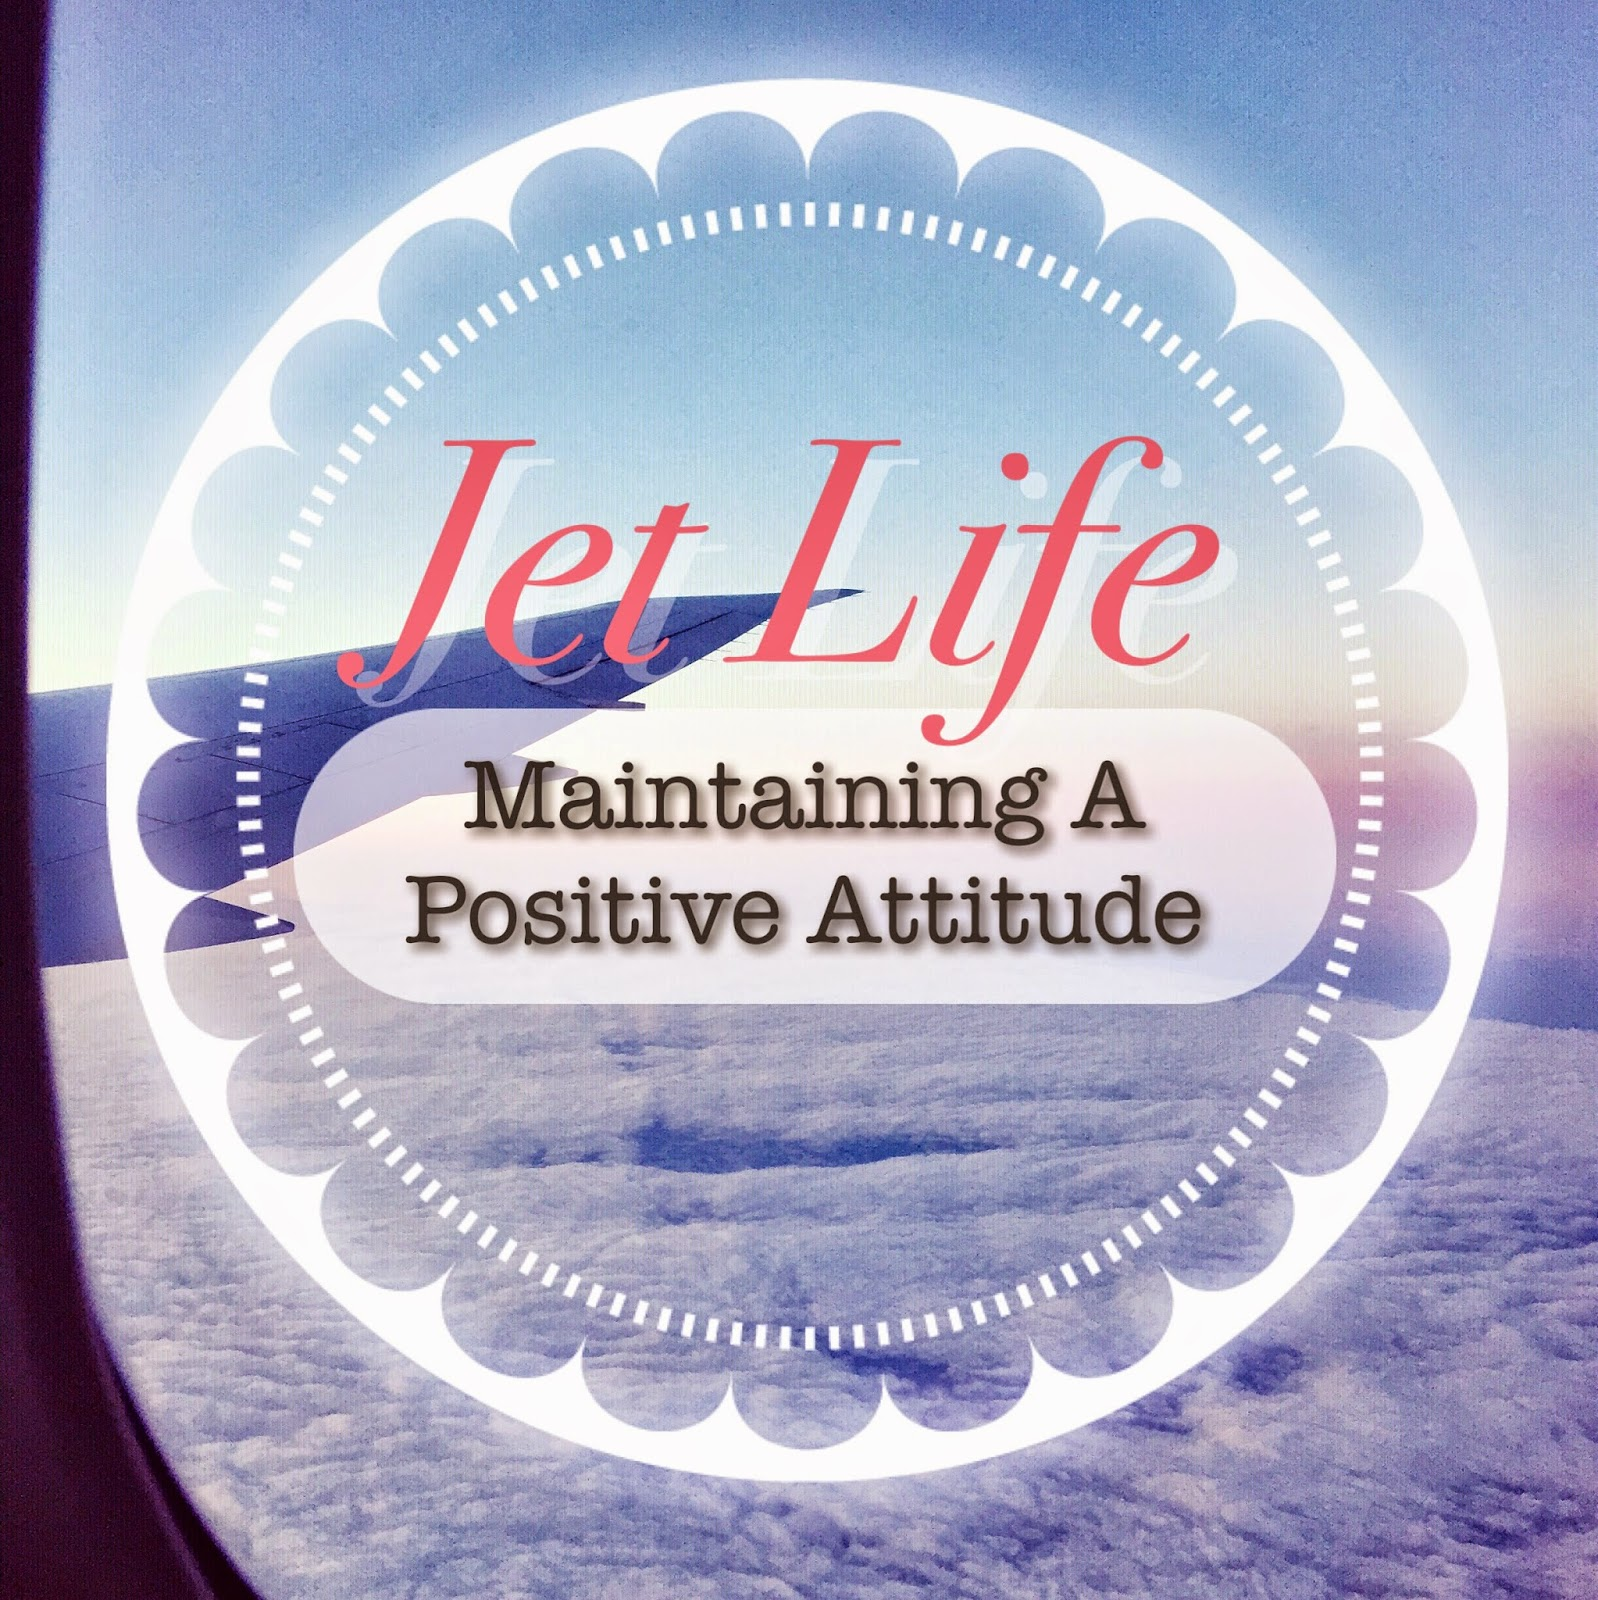 Jet Life Maintaining A Positive Attitude